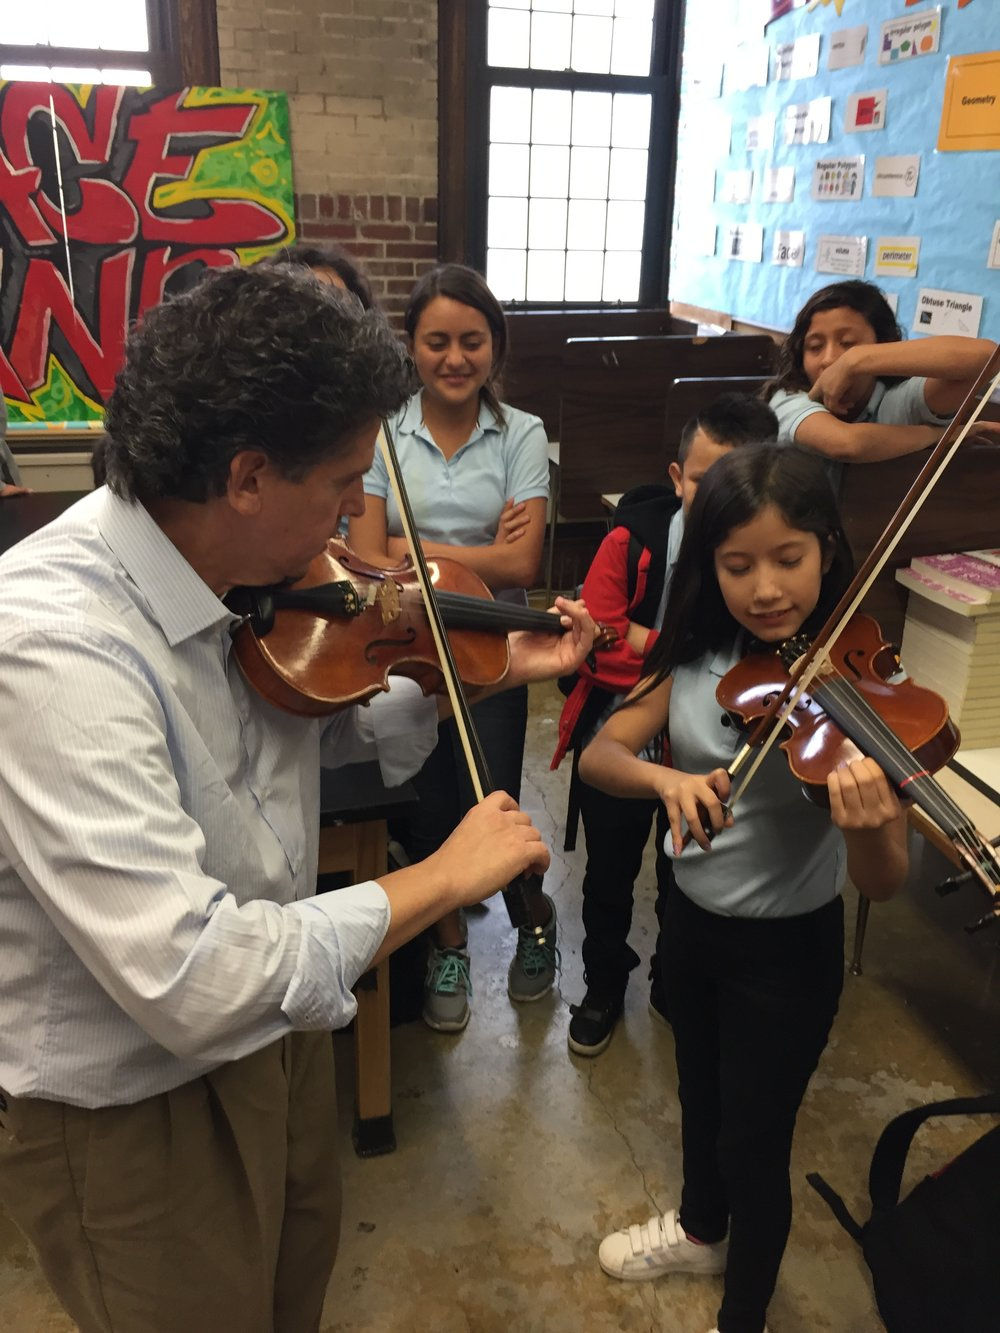 STRING SECTION: Students at Grace A. Dunn Middle School in Trenton are learning the violin from José Gregorio Sanchez Rodriguez, who is a product of the highly successful El Sistema program in Venezuela. Rodriguez also teaches at Westminster Conservatory in Princeton.